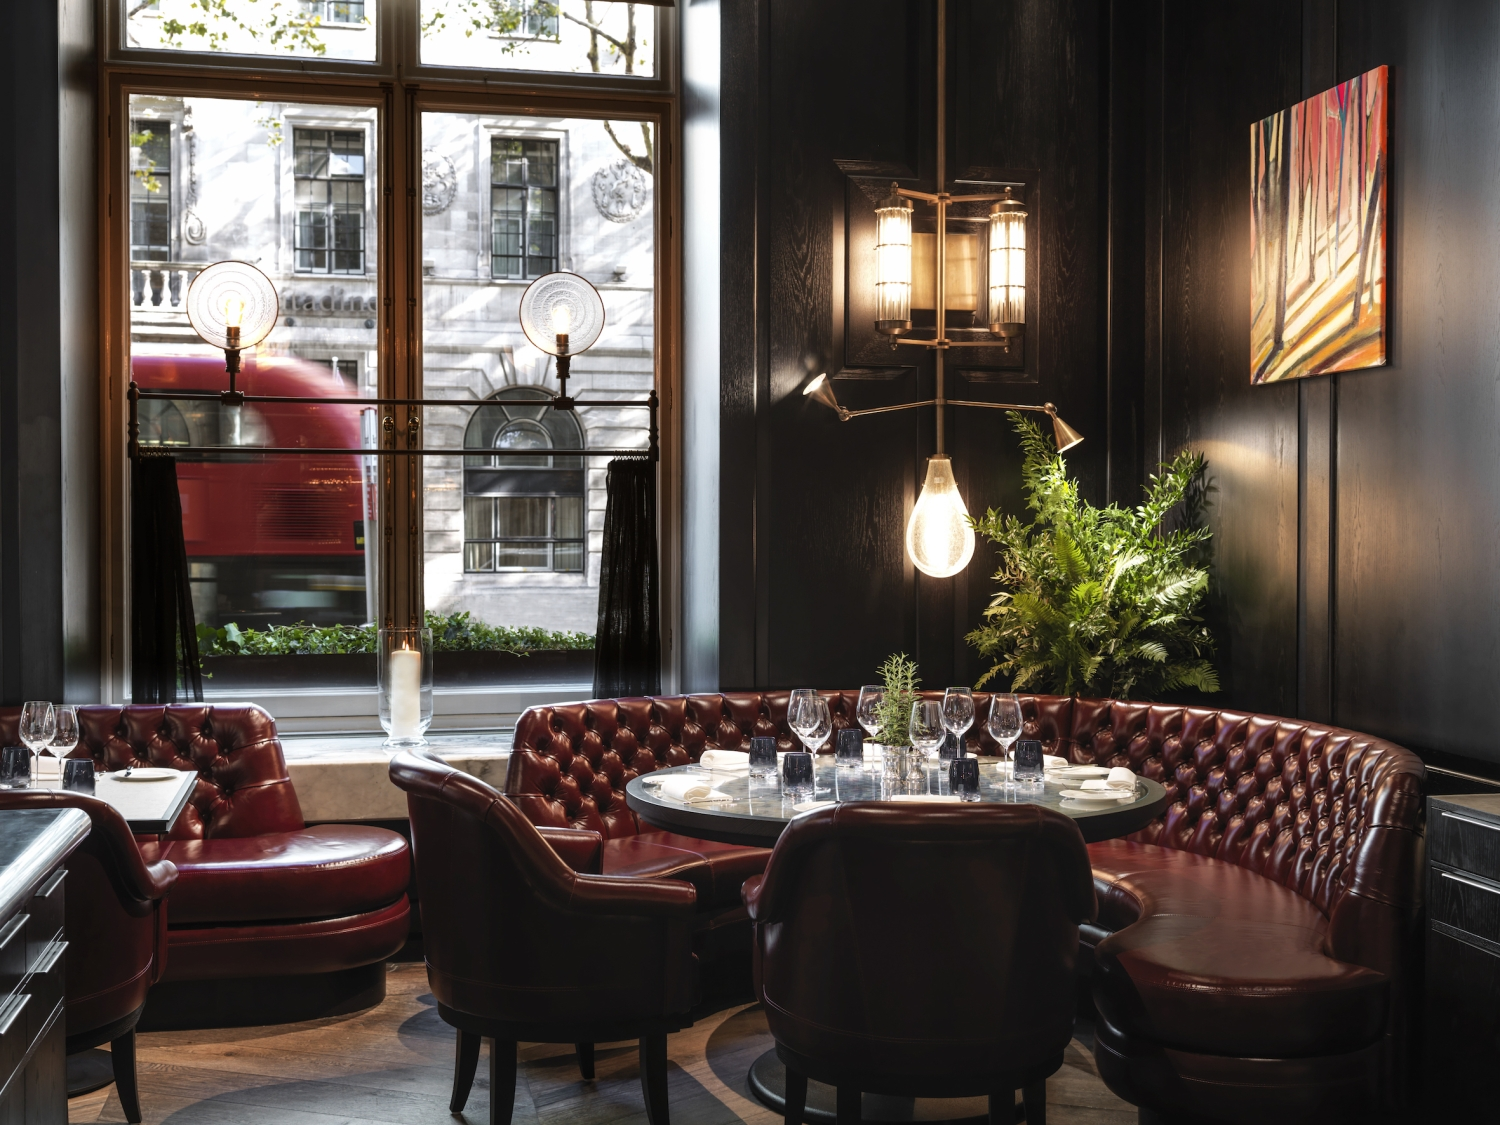 Kerridge's Bar & Grill at the Corinthia Hotel London